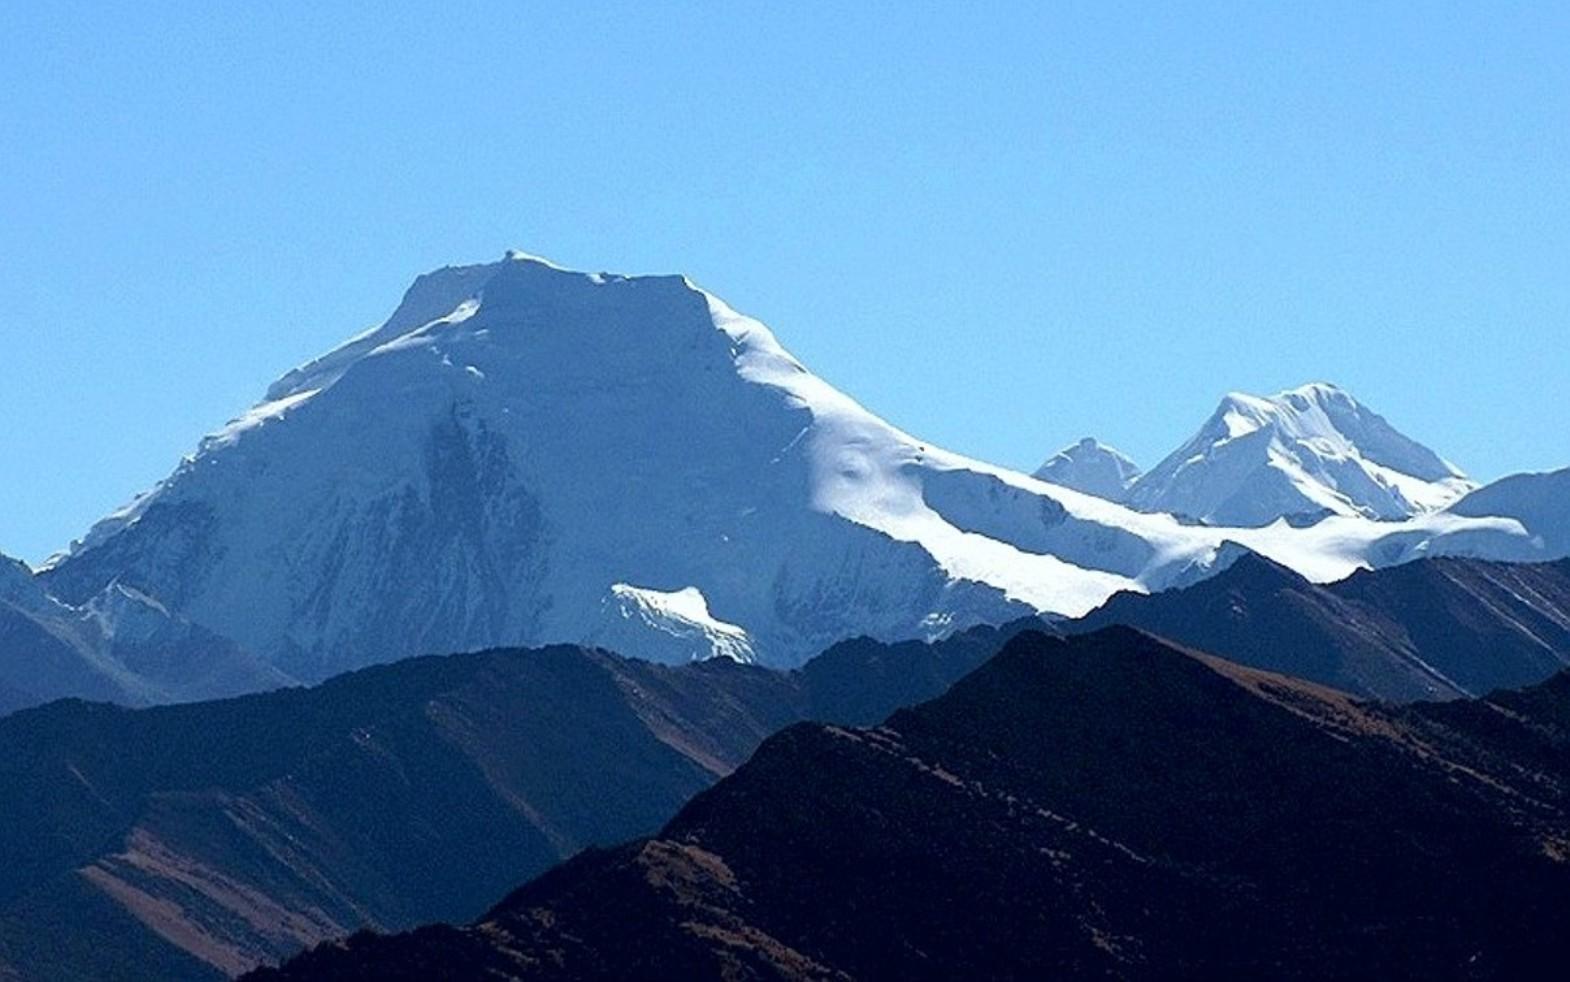 The northwest face of Chipula (6152m) is on the left, and in the background to the right are a 6121-meter and a 6215-meter peak. [Photo] Tom Nakamura